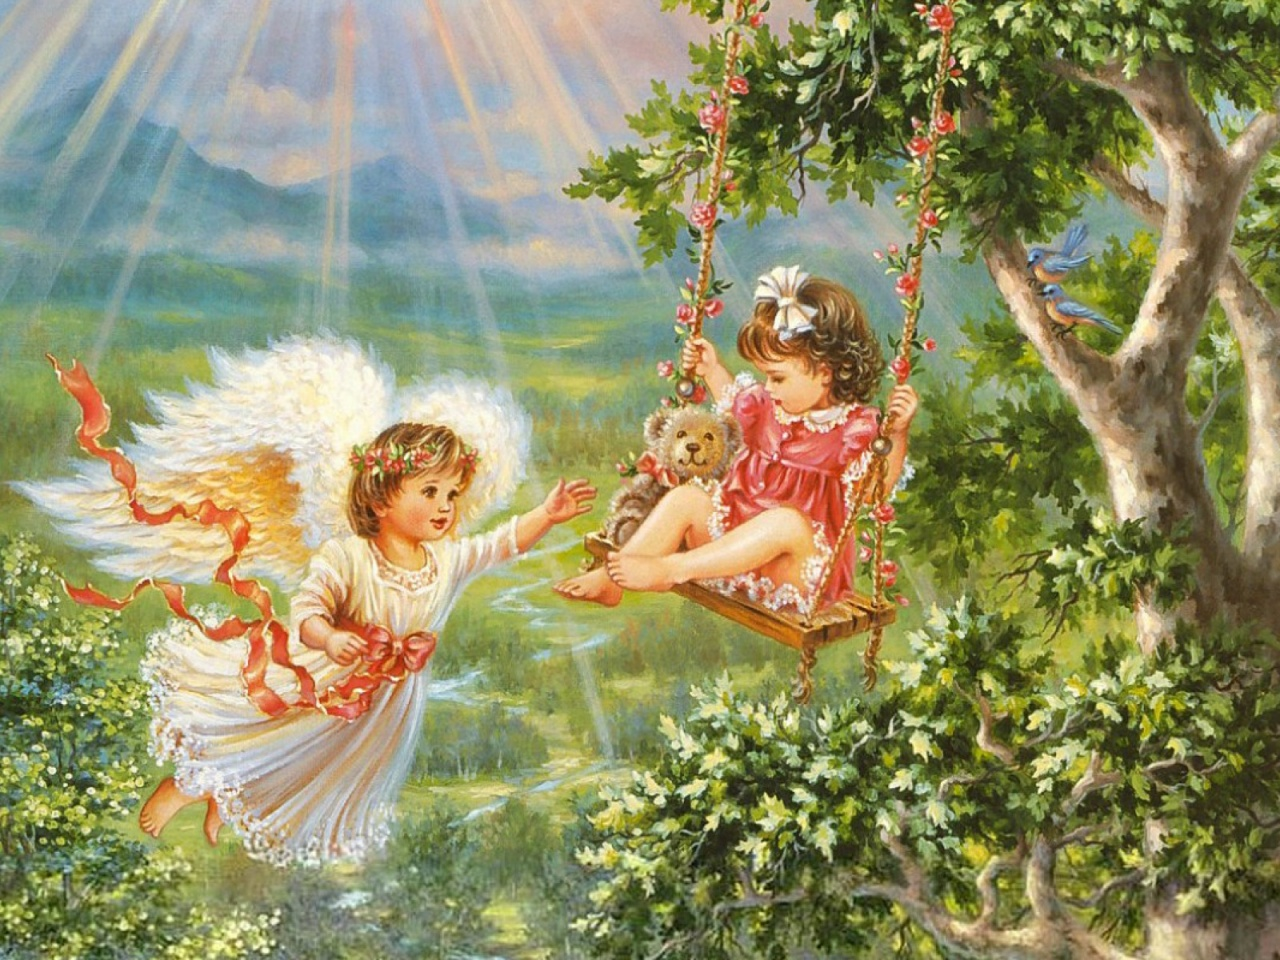 1280x960 Angel Child Swing Forest Desktop PC And Mac Wallpaper